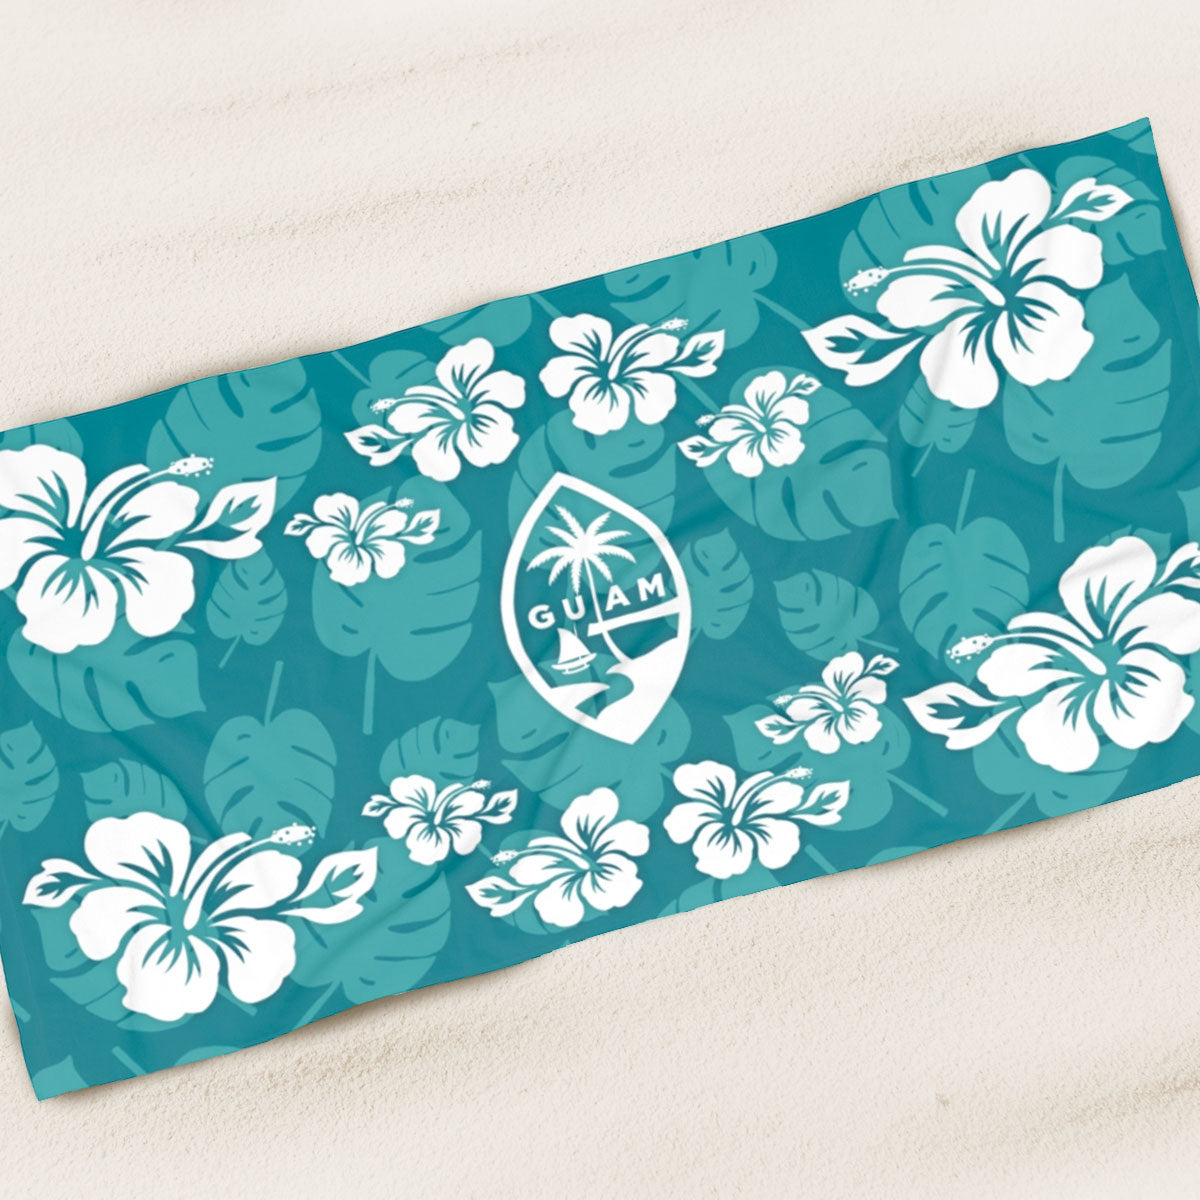 Guam Teal Hibiscus Beach Towel